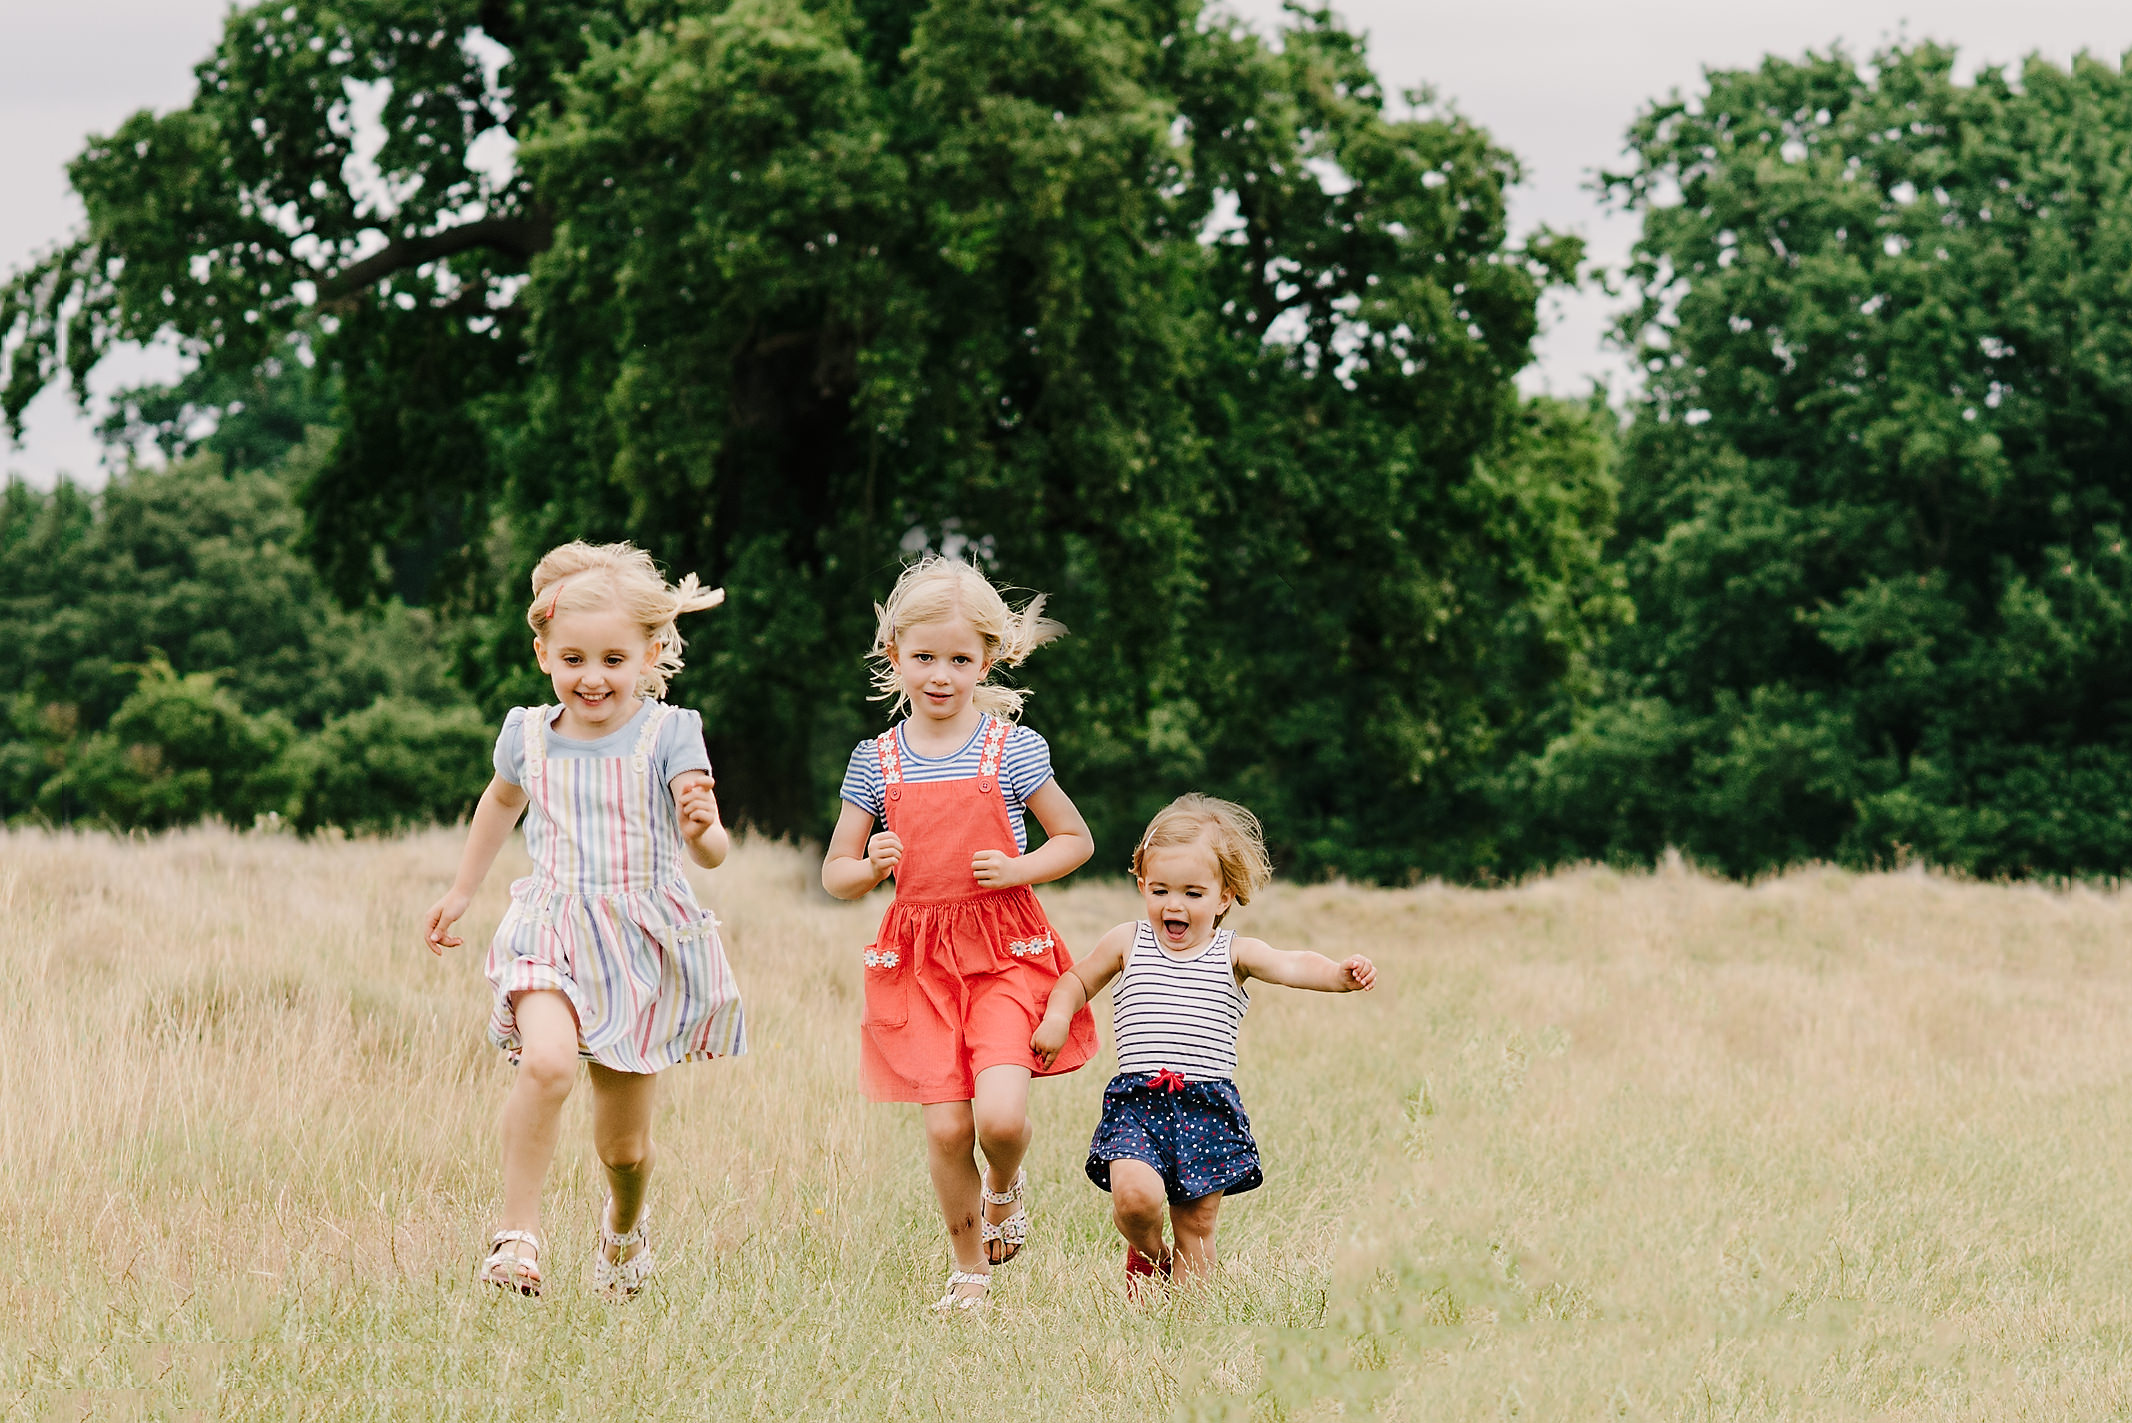 three little girls running towards the camera in the park | Children's Photographer Aylesbury Buckinghamshire and Thame Oxfordshire